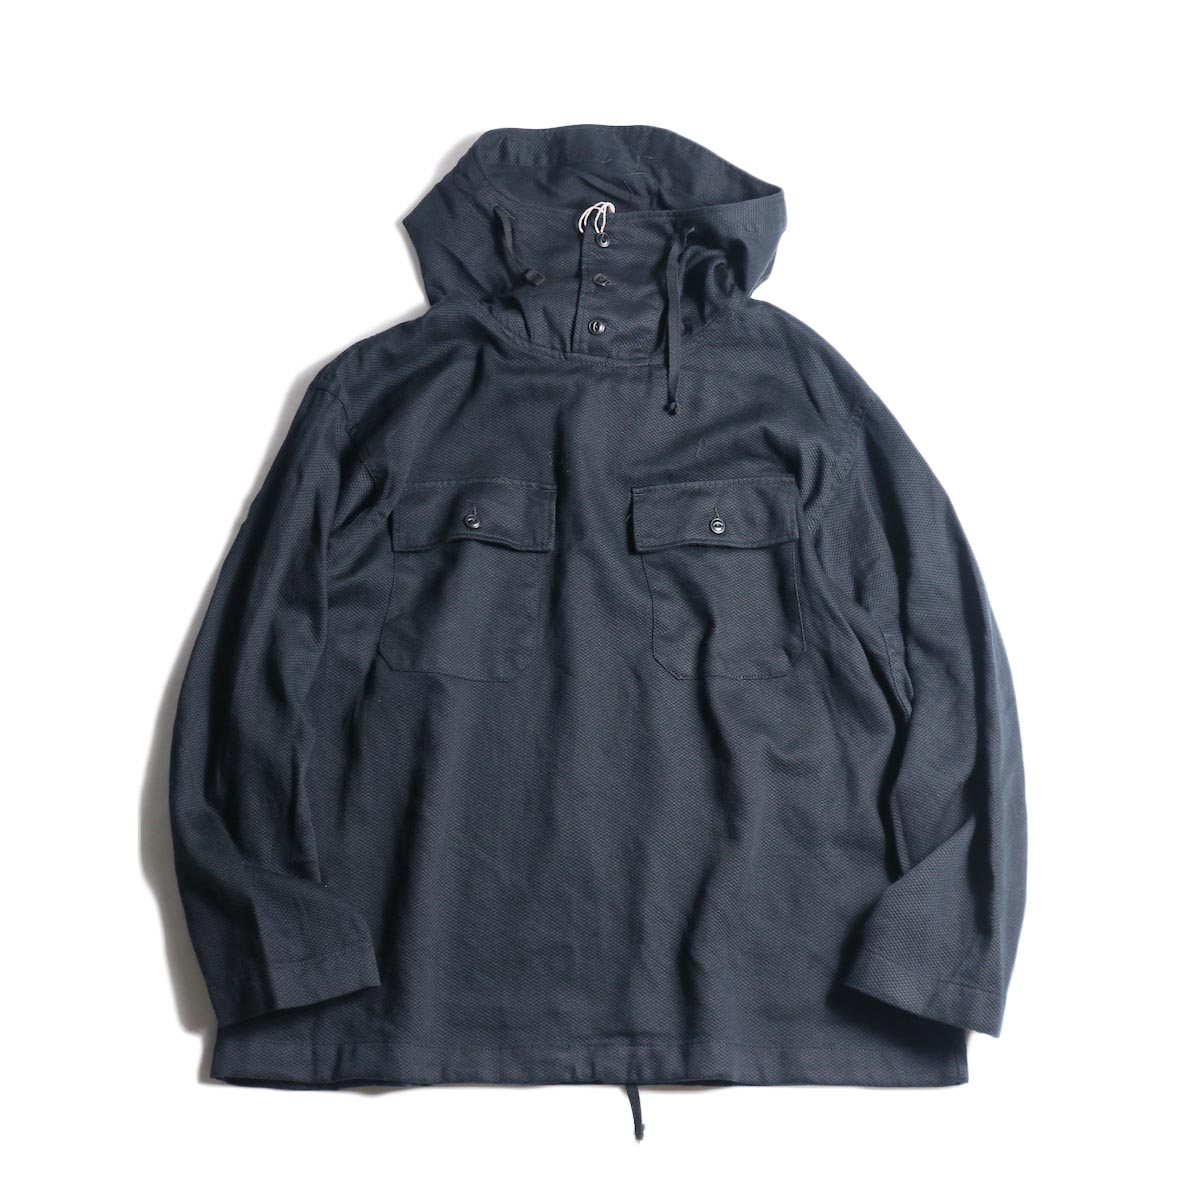 Engineered Garments / Cagoule Shirt -Waffle Pique (Black)